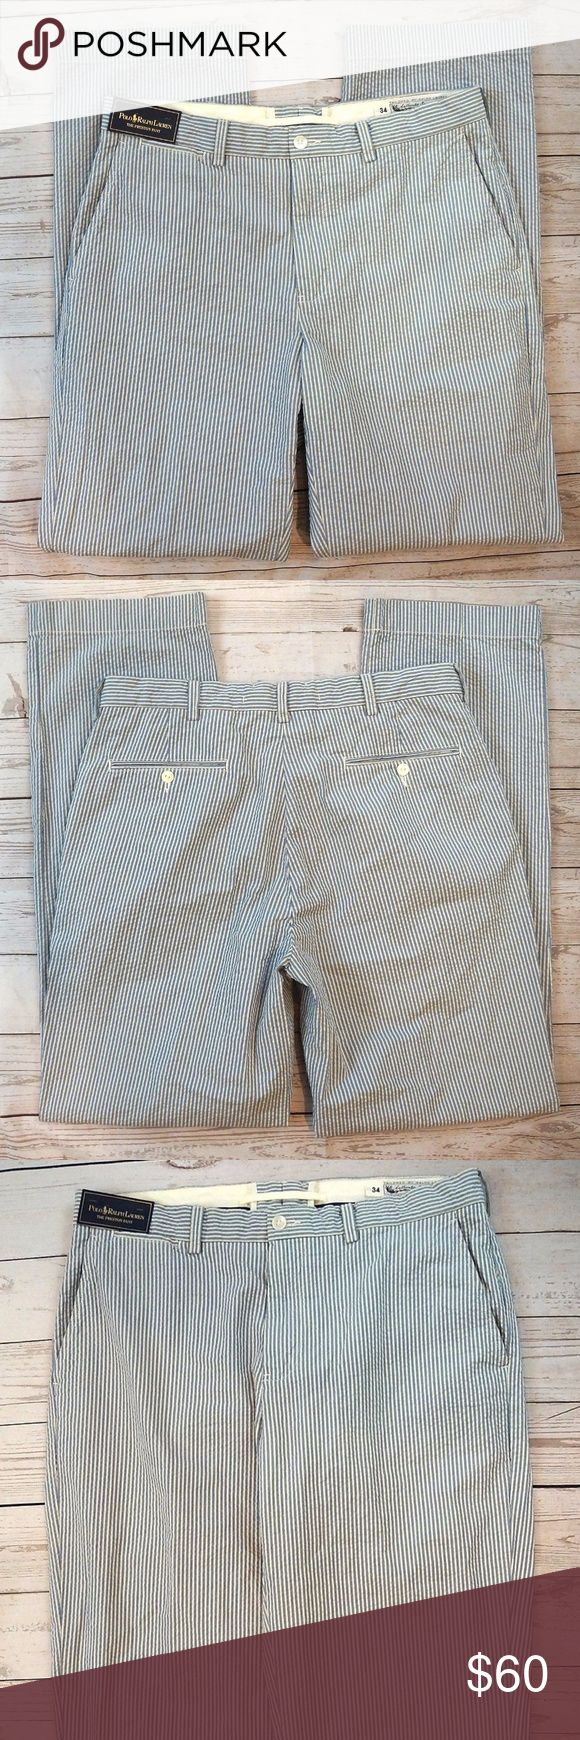 """Polo Ralph Lauren Preston Seersucker Mens Pants Polo Ralph Lauren Preston Seersucker Mens Pants Size 34 X 34 NWT  Hand Measurements: Waist: 34"""" Inseam: 34"""" Rise: 10.5"""" Thigh: 26"""" Leg Opening: 9""""  All orders are shipped within 24 hours of payment Monday through Friday  PM#2869 Polo by Ralph Lauren Pants Dress"""